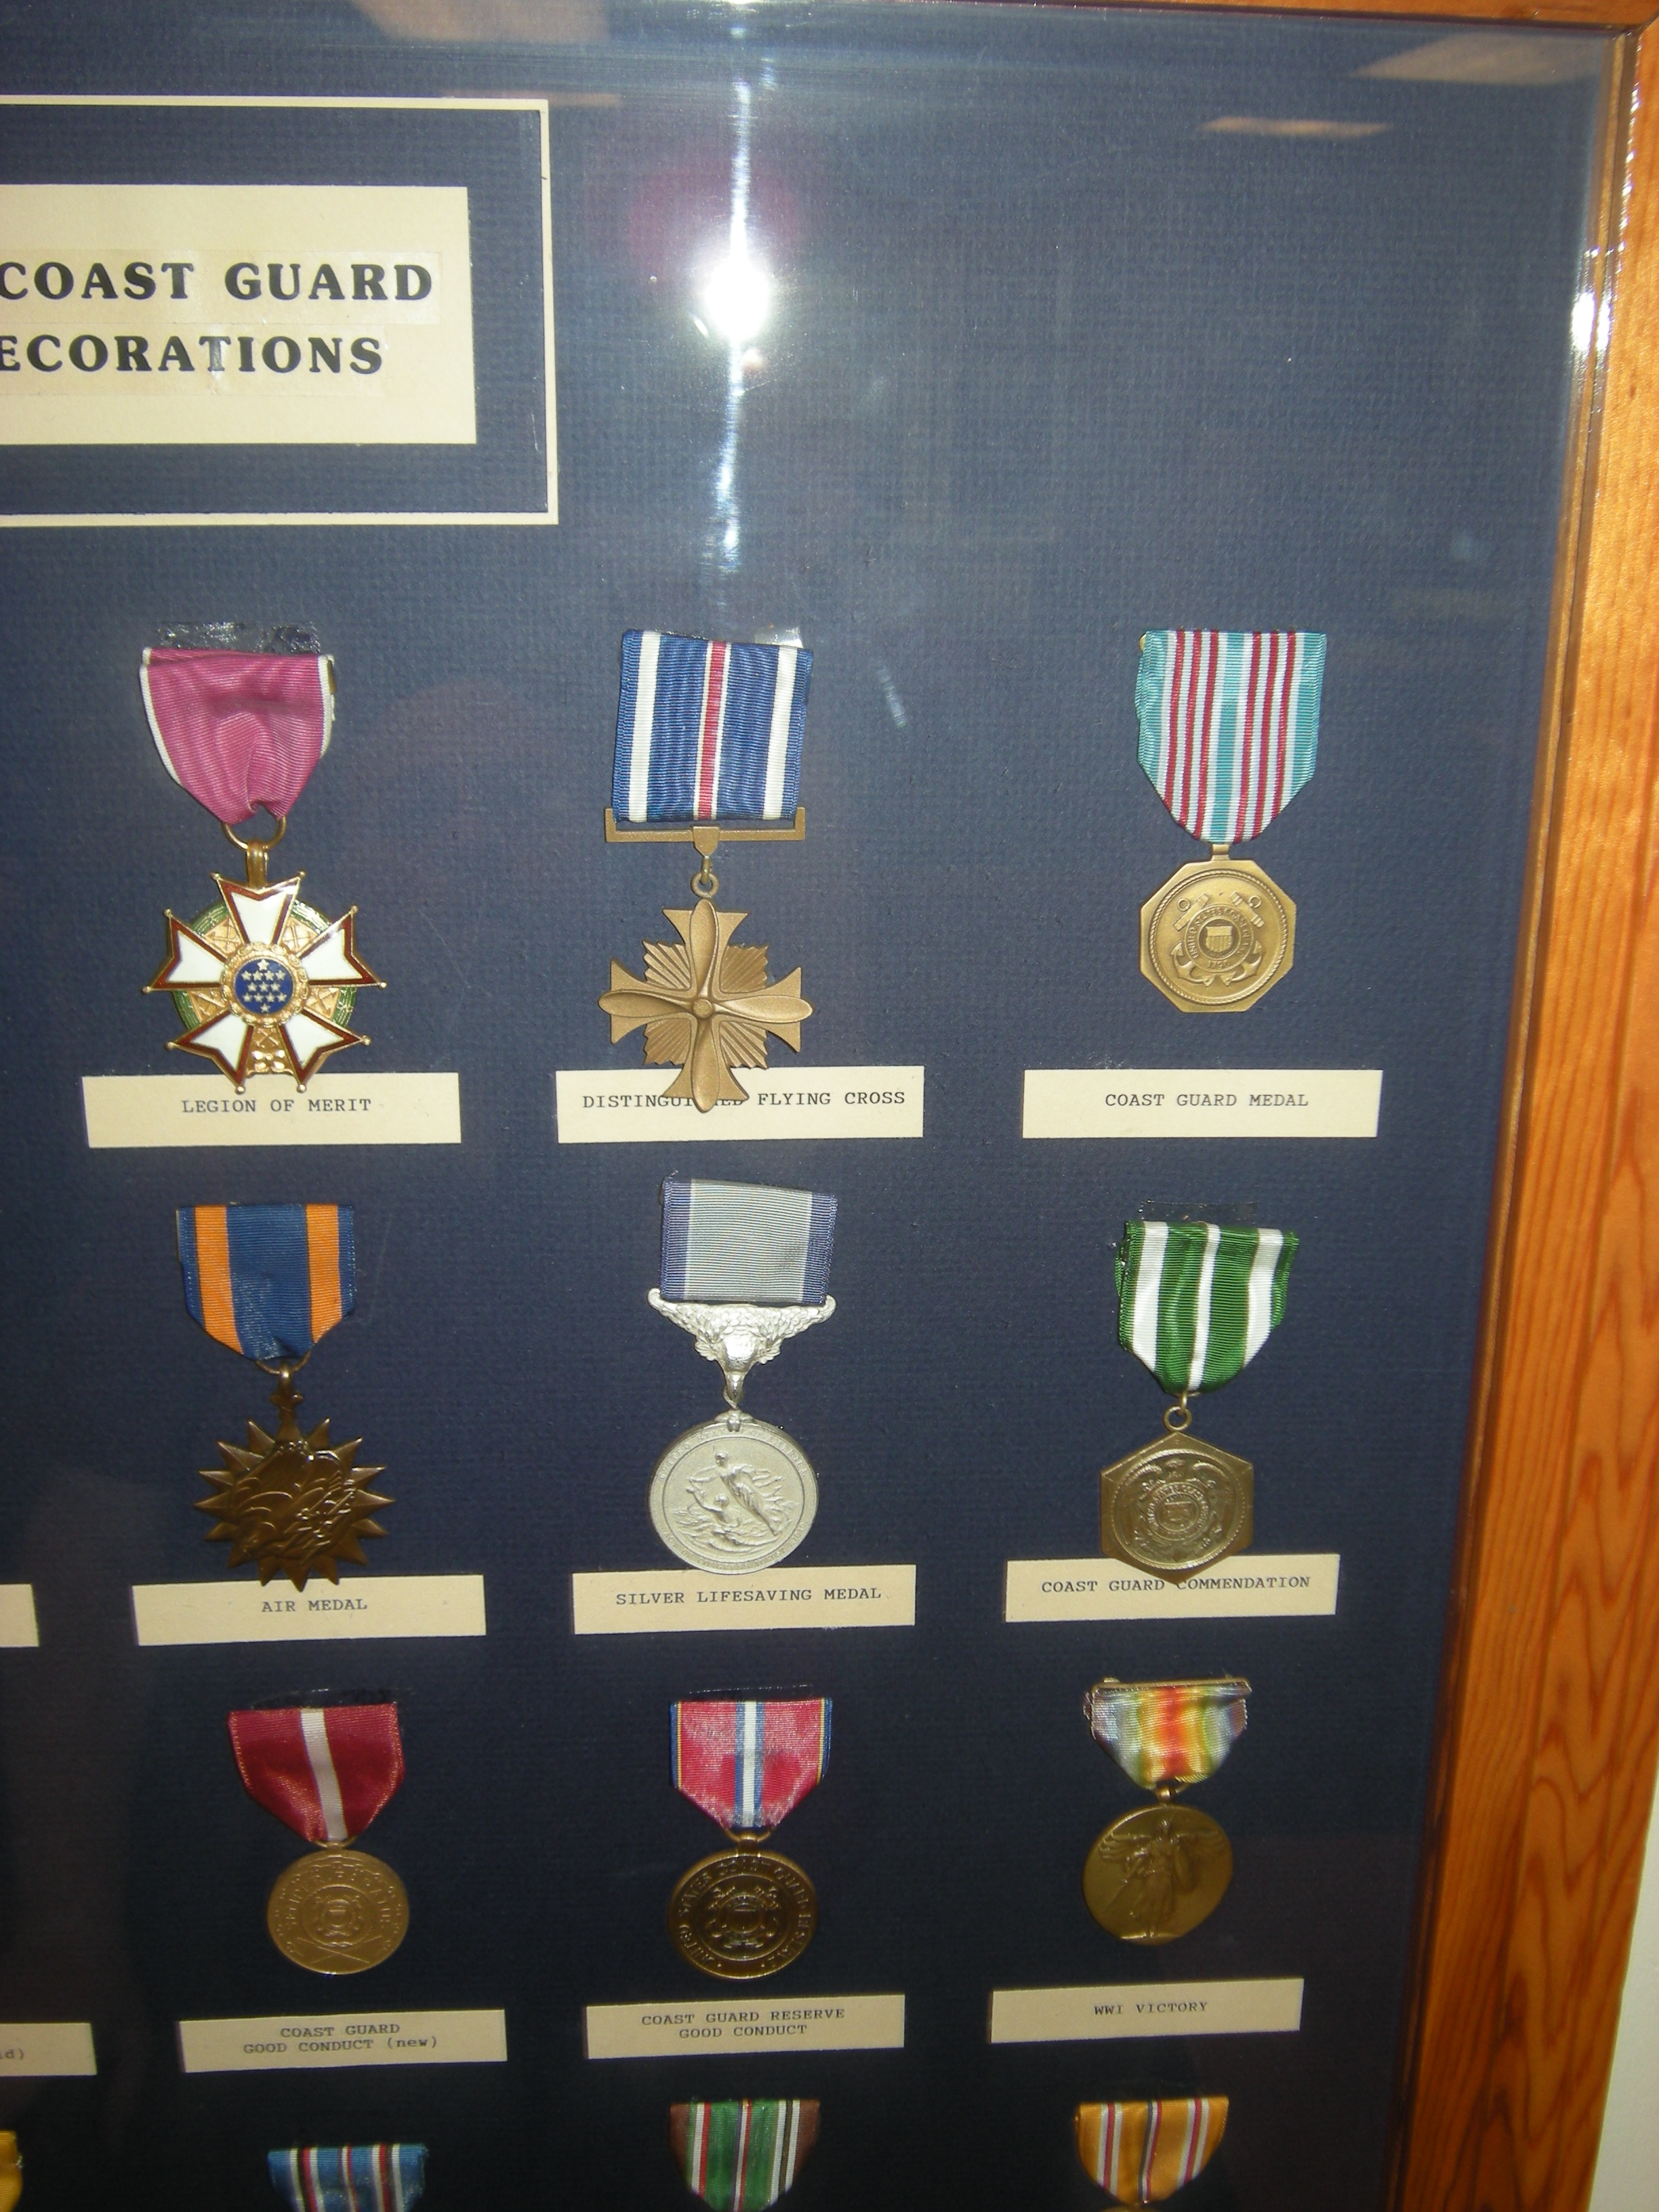 File:USCG medals 02 jpg - Wikimedia Commons